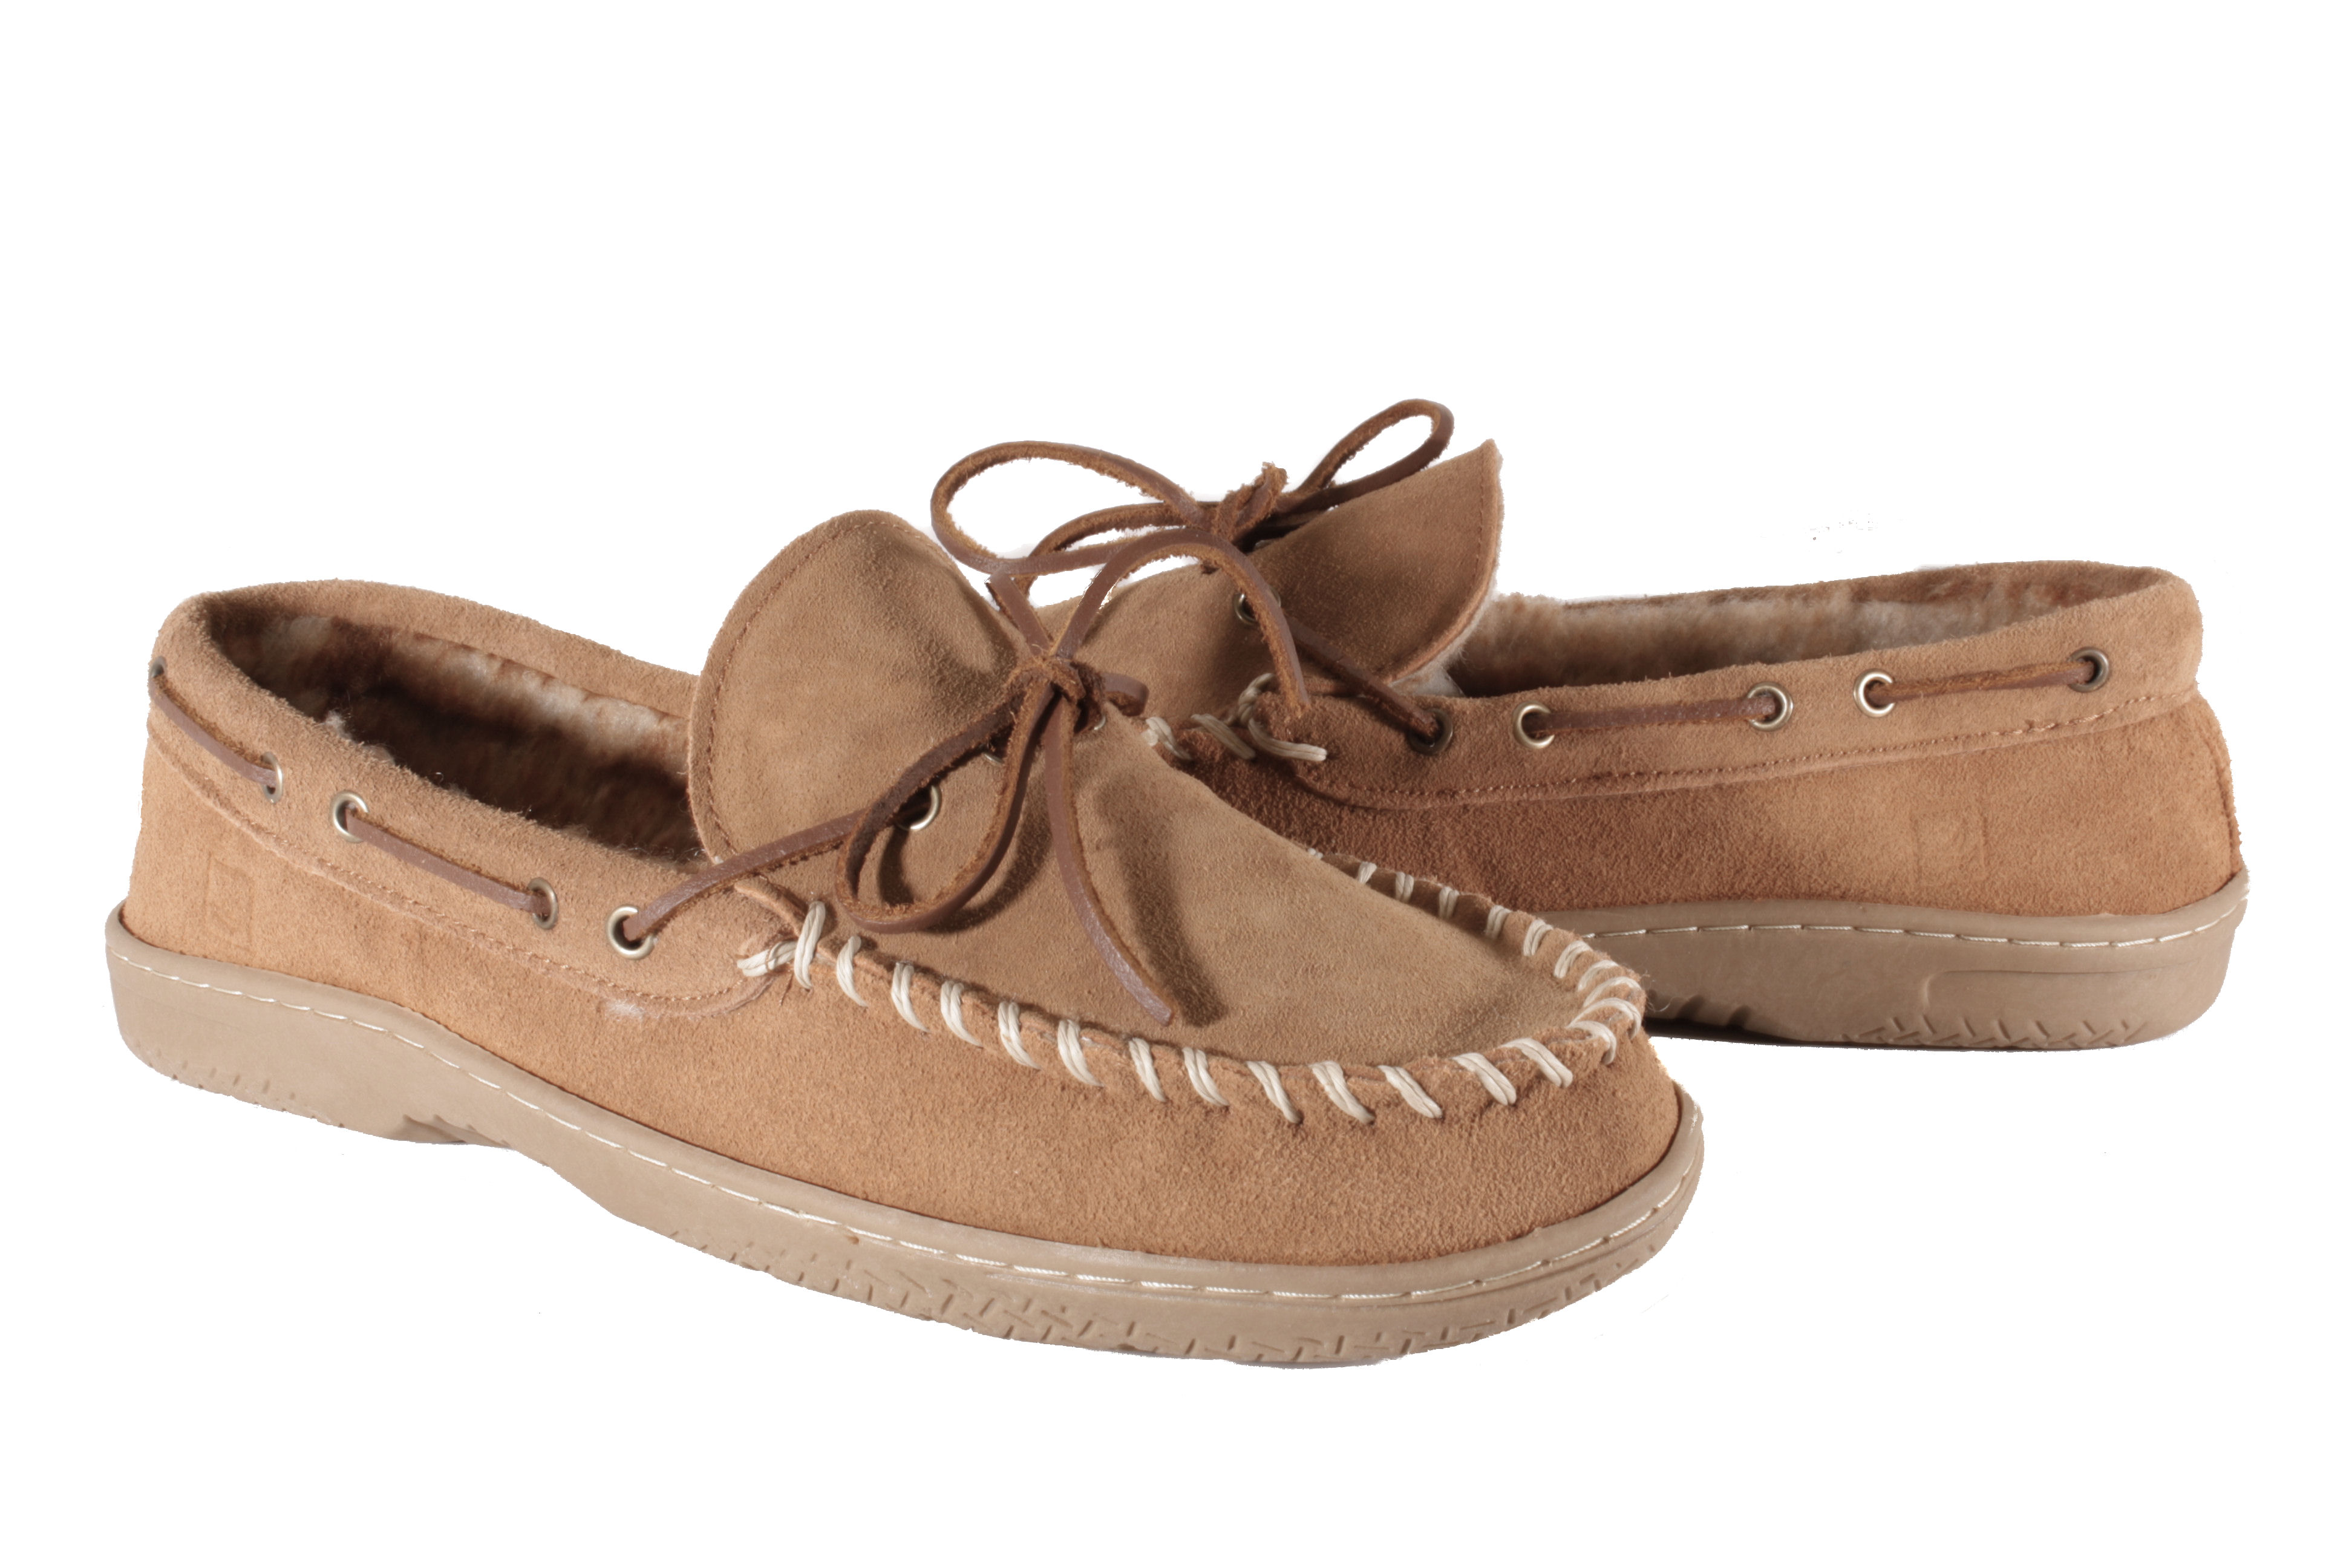 Sperry Top Sider Moccasin Suede Casual Slippers House Shoes MENS Medium Width